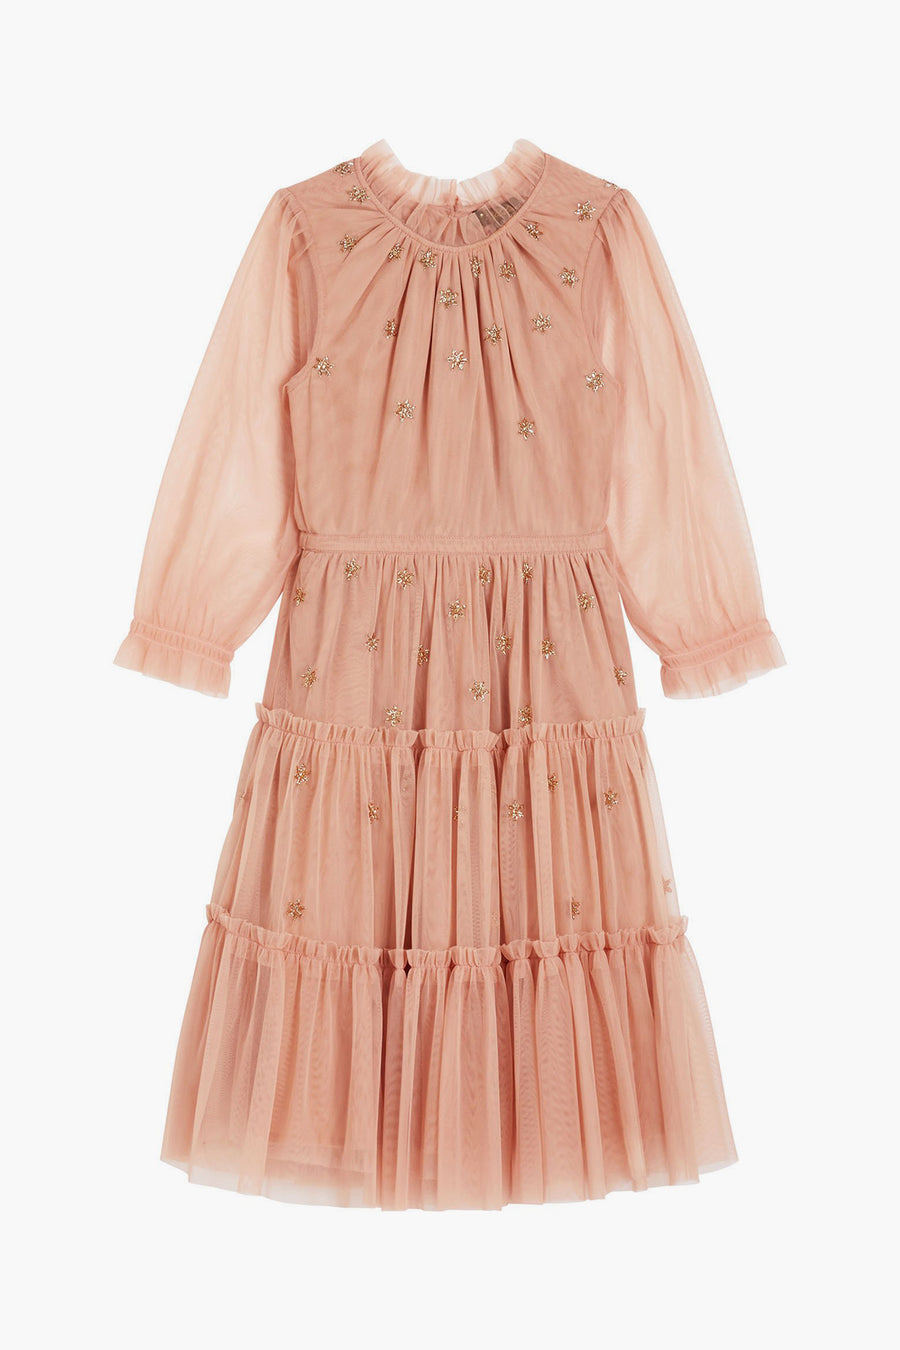 Velveteen Carolina Girls Dress - Misty Rose